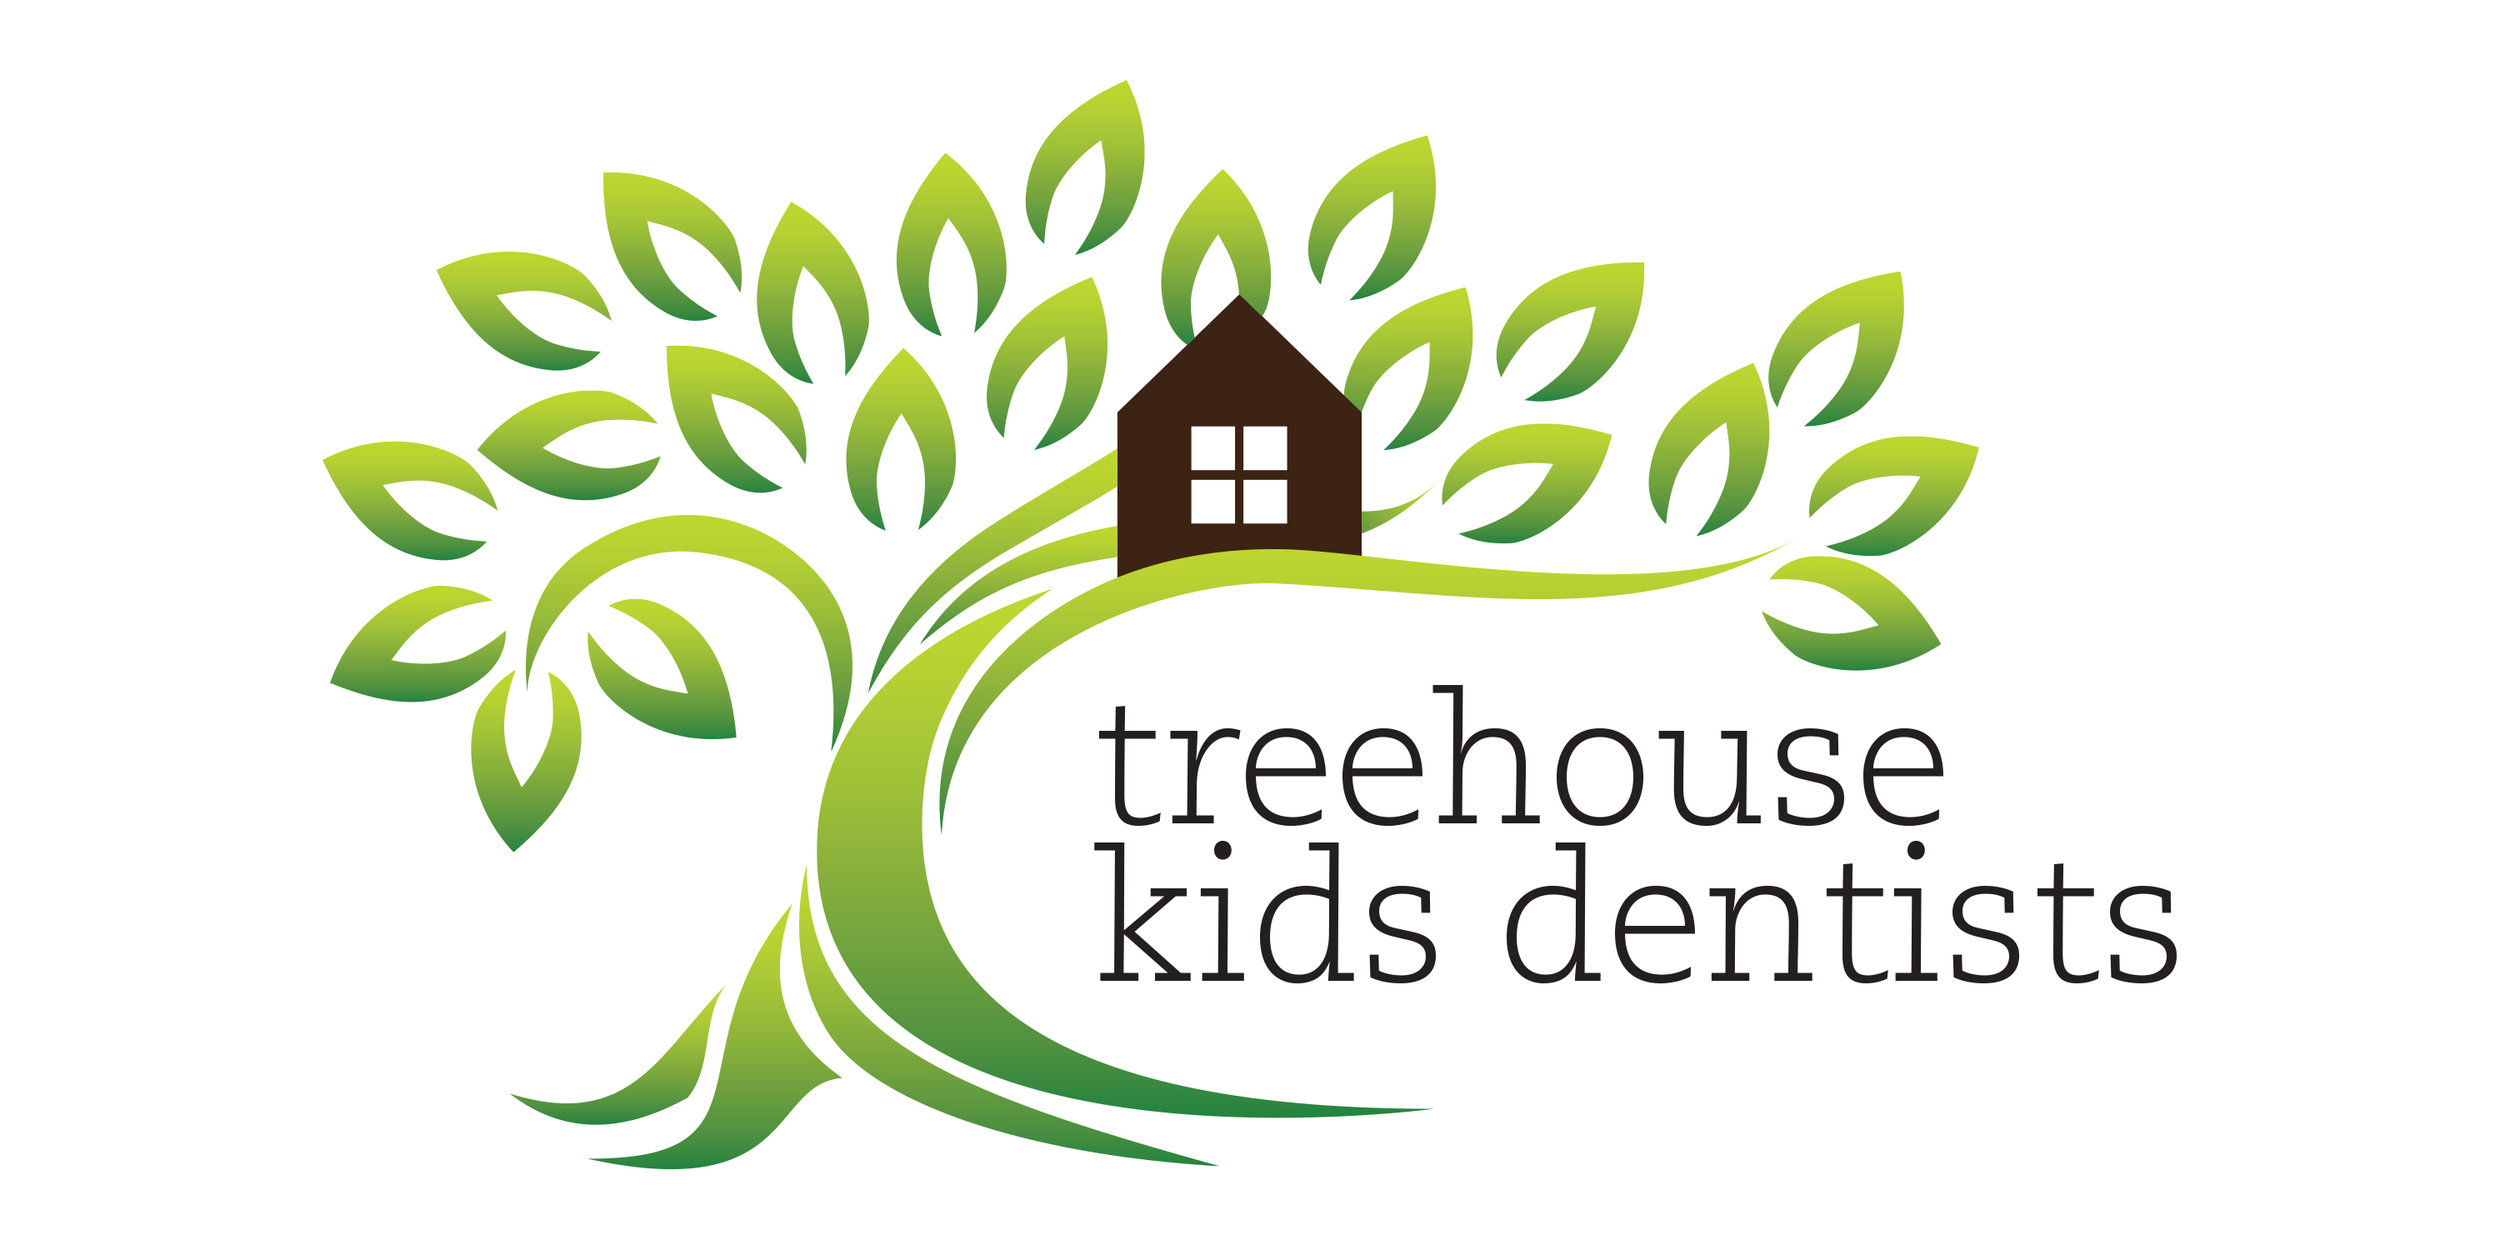 Web_Samples_Treehouse_Logos3.jpg